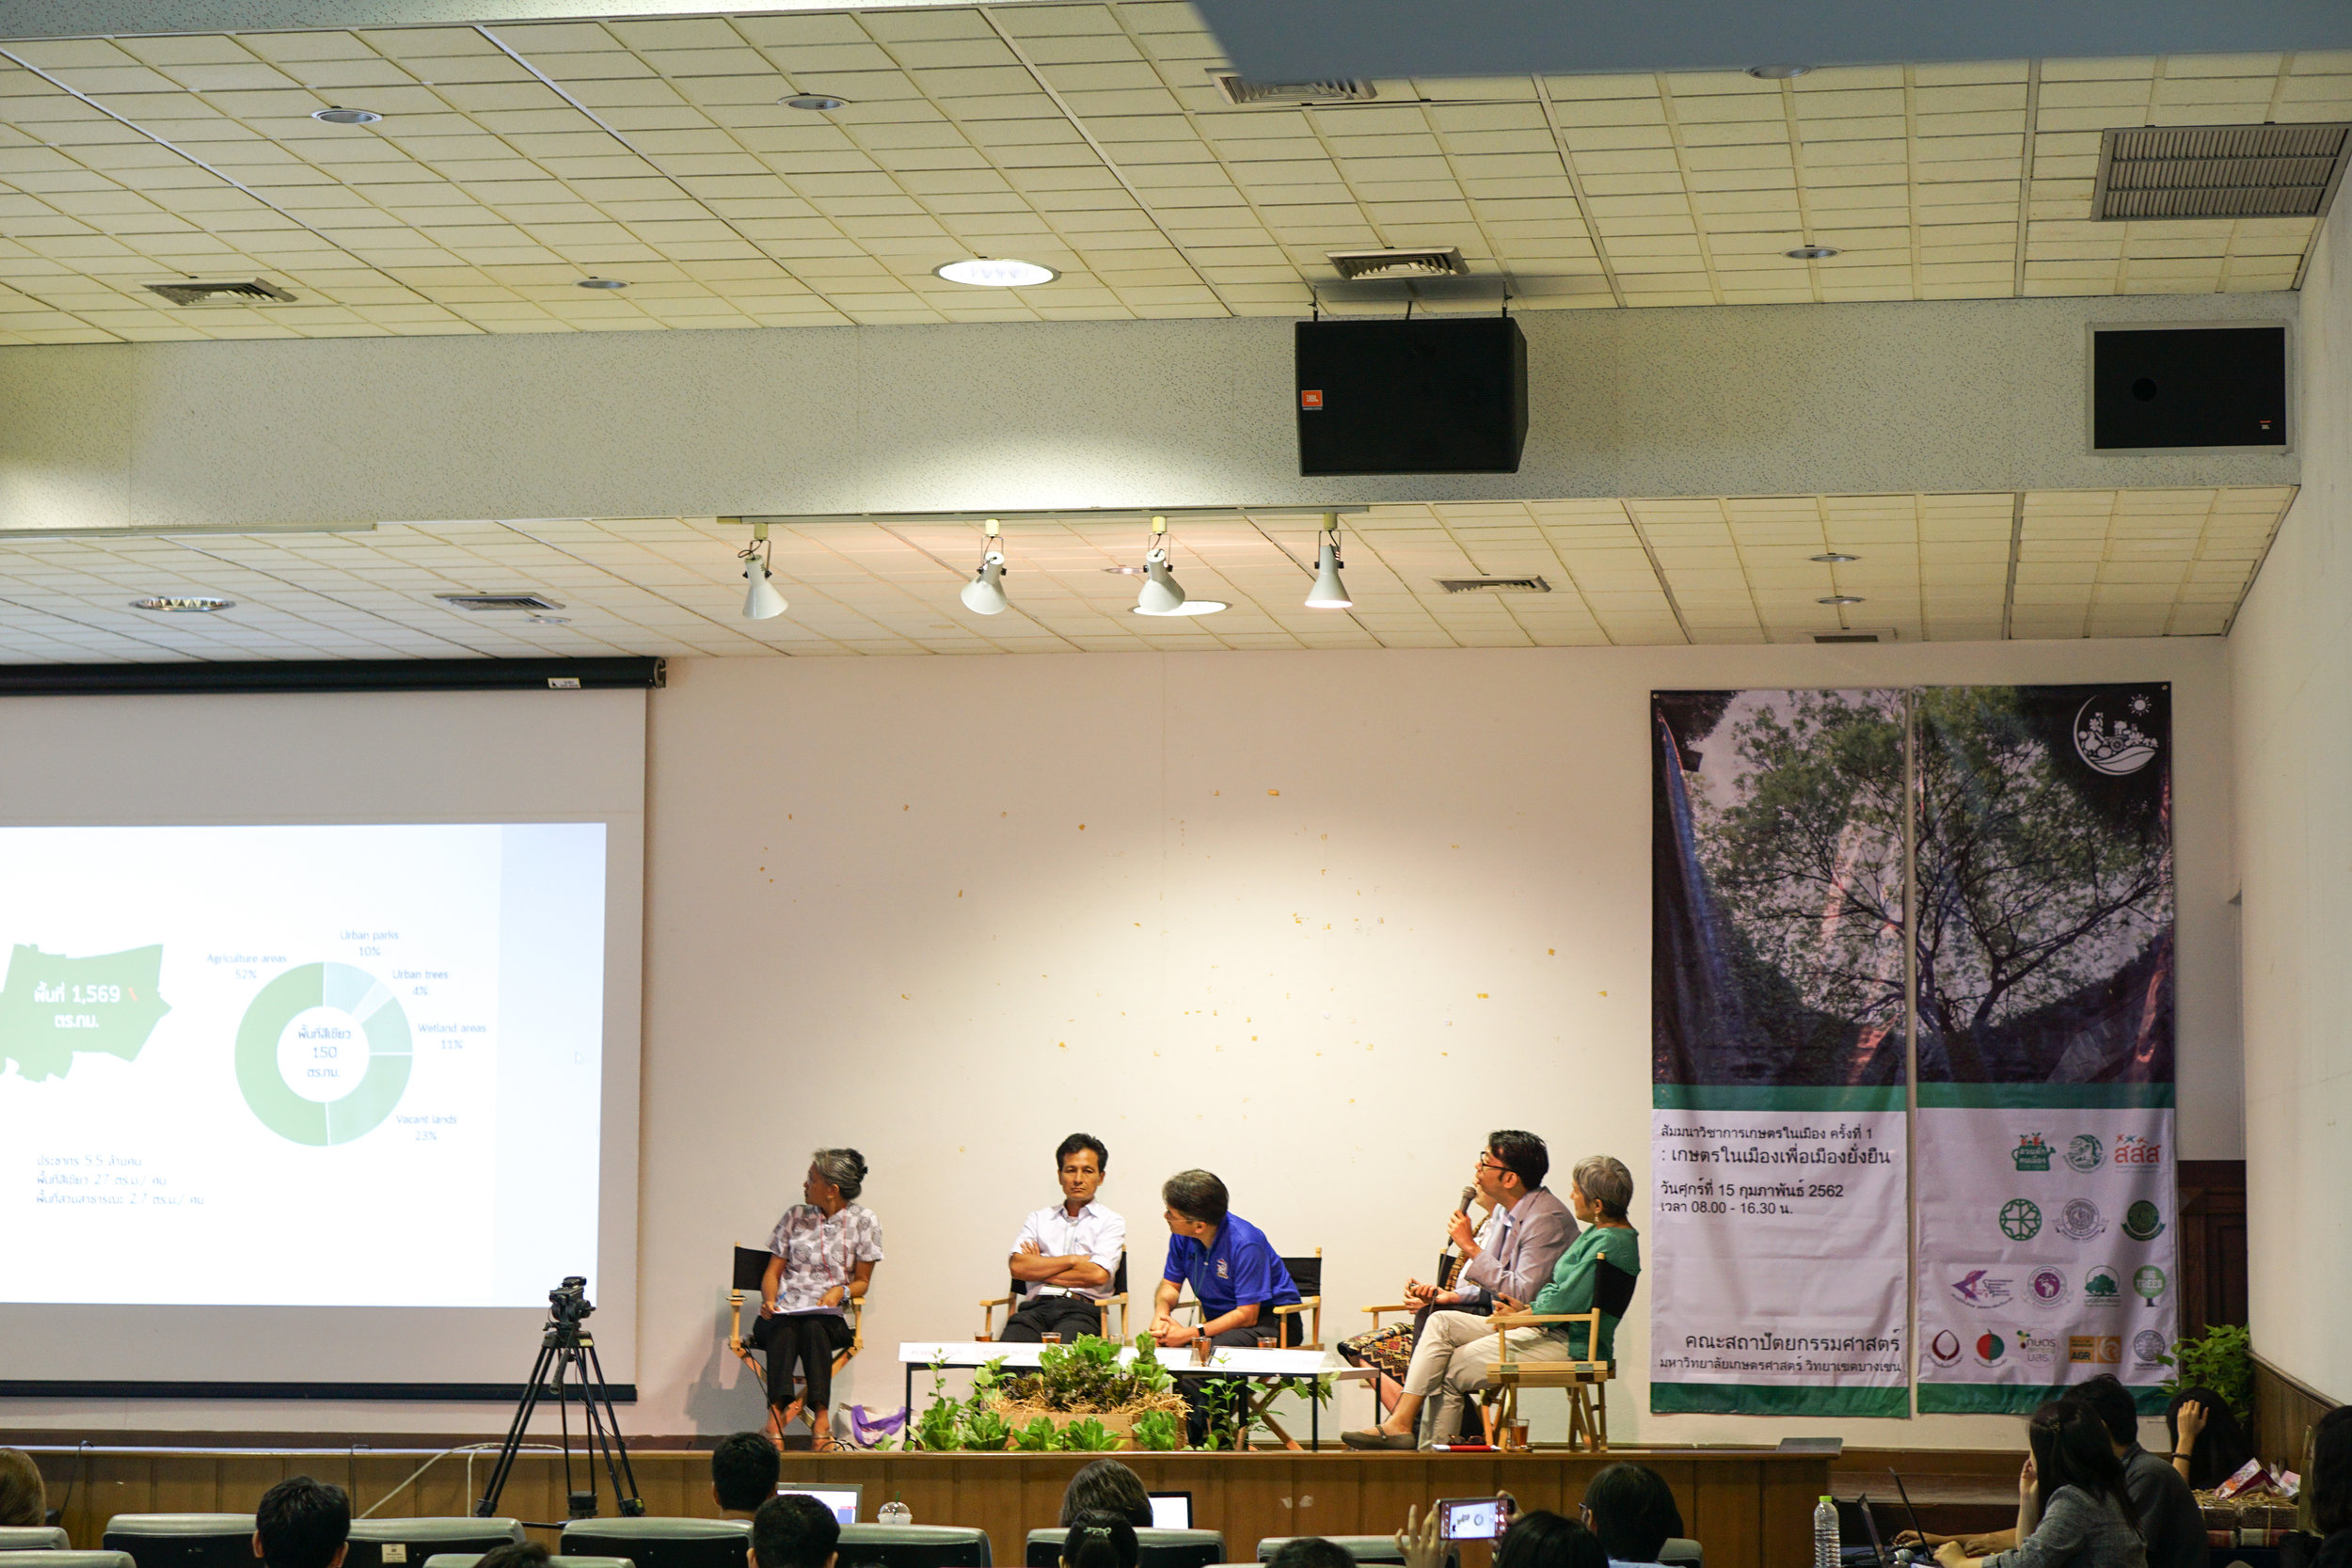 City Farming for a Sustainable City Event: The seminar